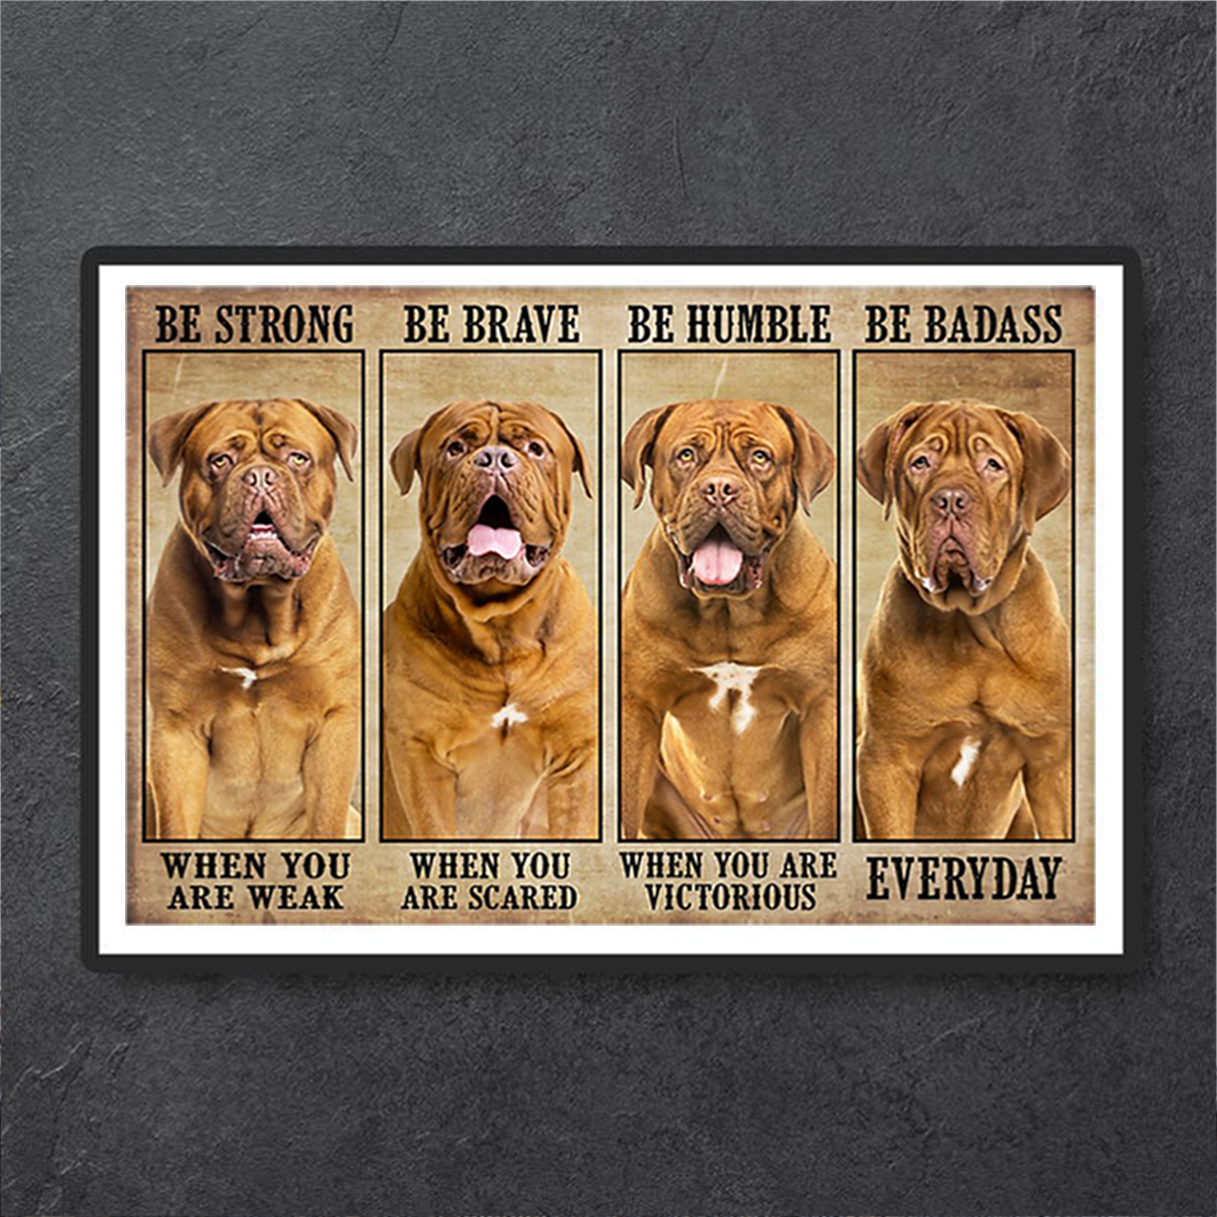 Dogue be strong be brave be humble be badass poster A1